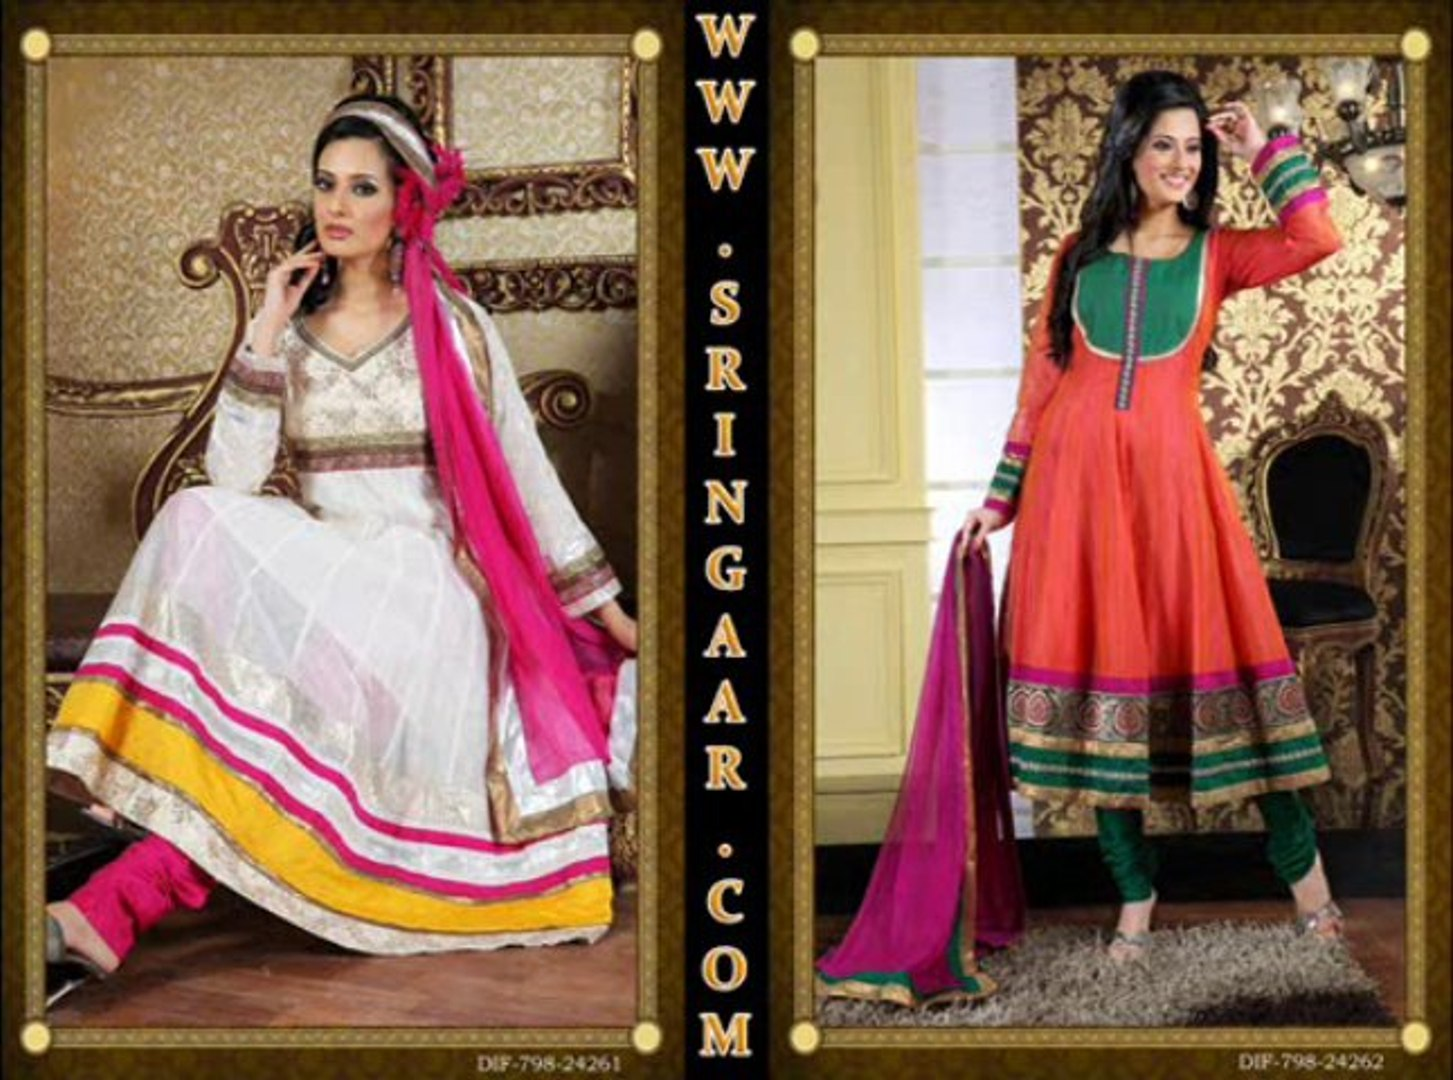 Beautiful lehengas, Beautiful Marriage lehengas, Beautiful chiffon bridesmaid dress